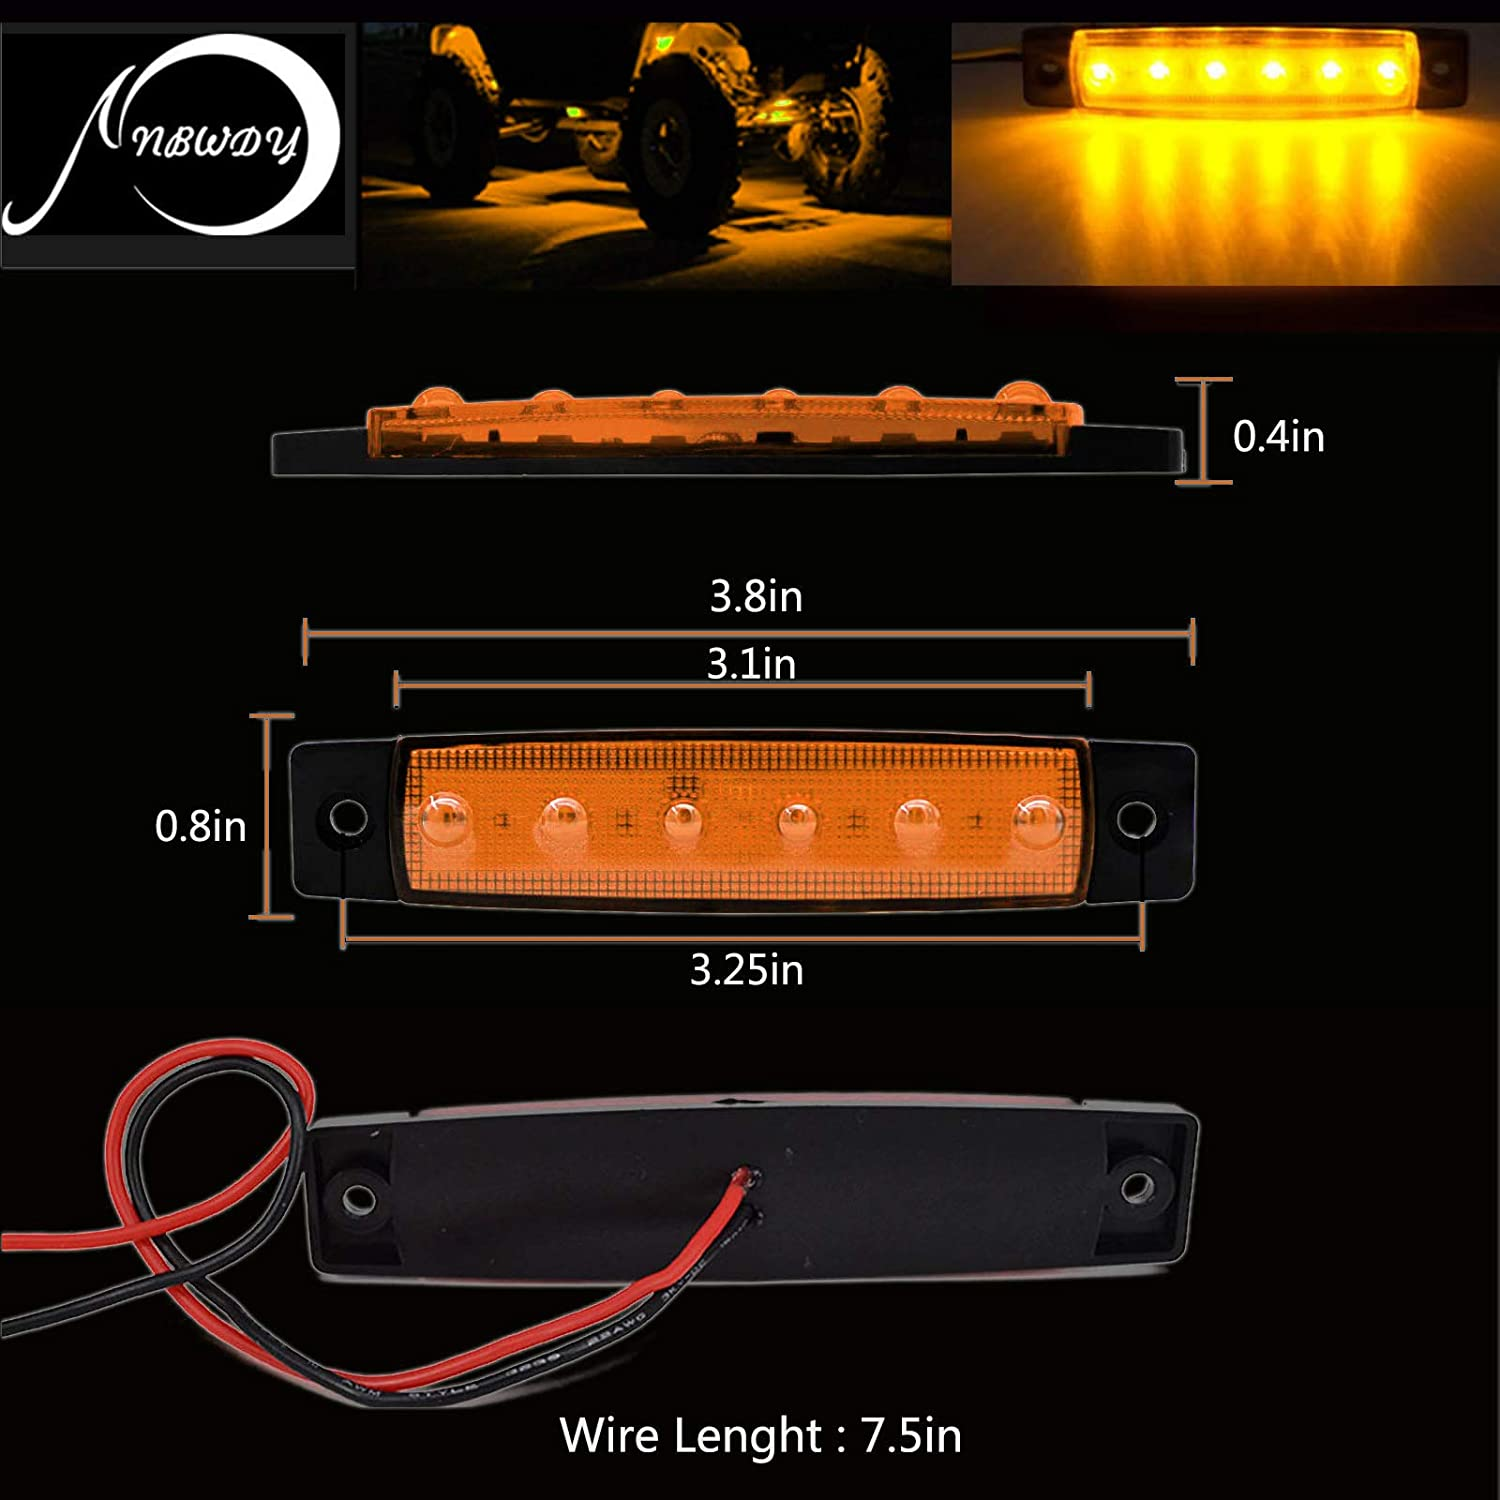 NBWDY 10Pcs Waterproof 3.8 Sealed Amber LED Marker//Rock//Wheel//Underglow Light Kits for Jeep,Snowmobile,Truck,Golf Cart,Lorry,RV,Camper HGV,Offroad Cab,RV,SUV Amber